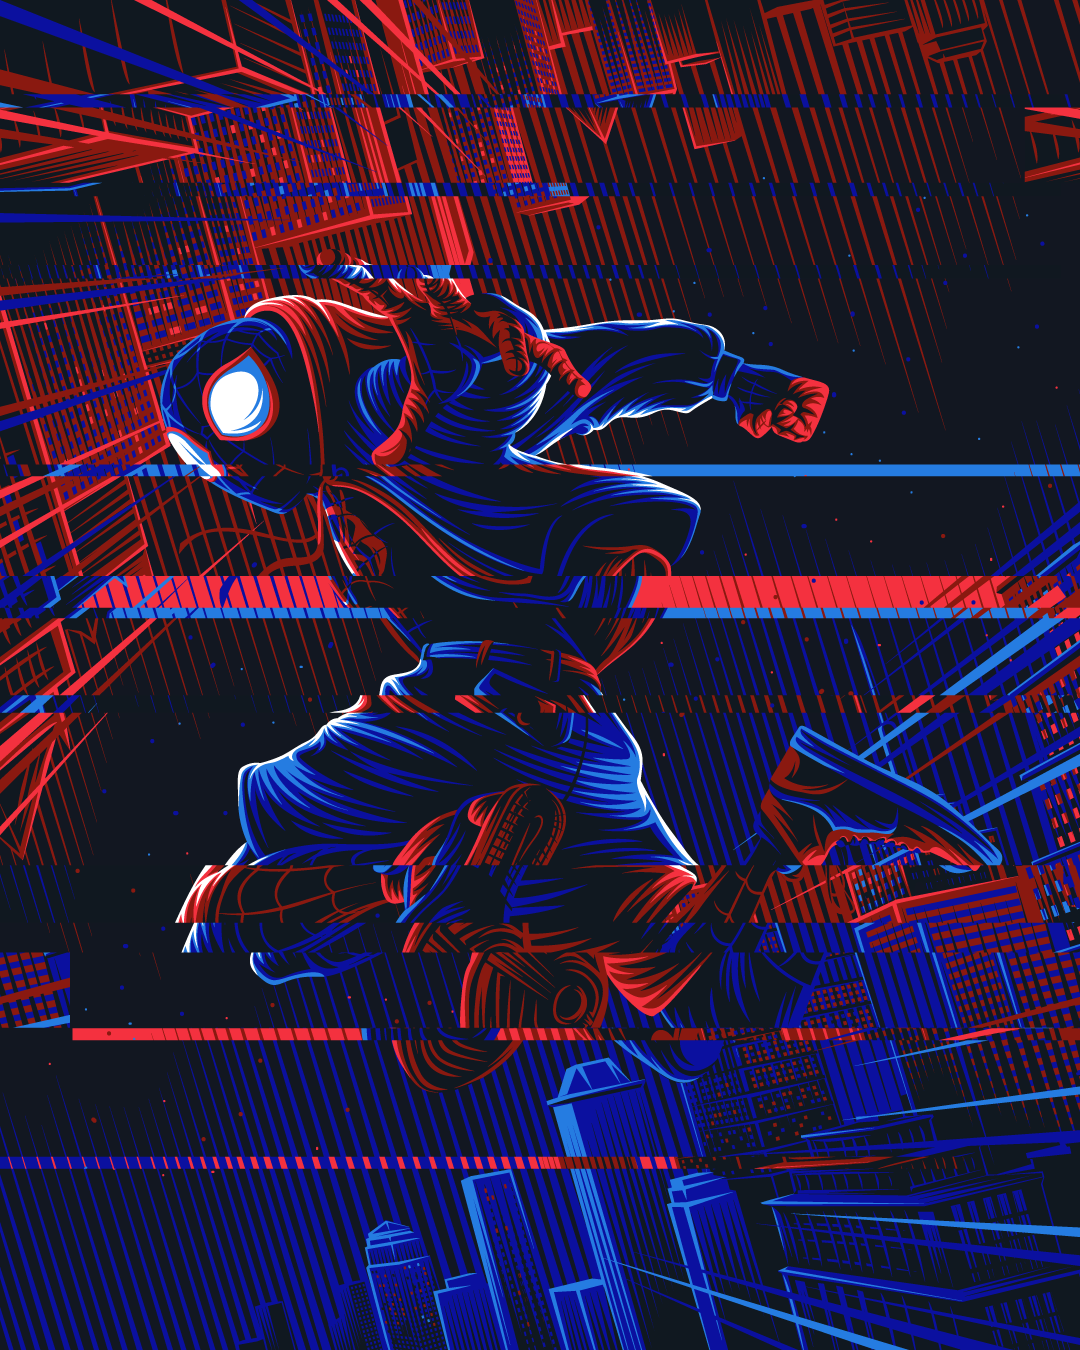 Spiderman: Into the Spiderverse fan art poster